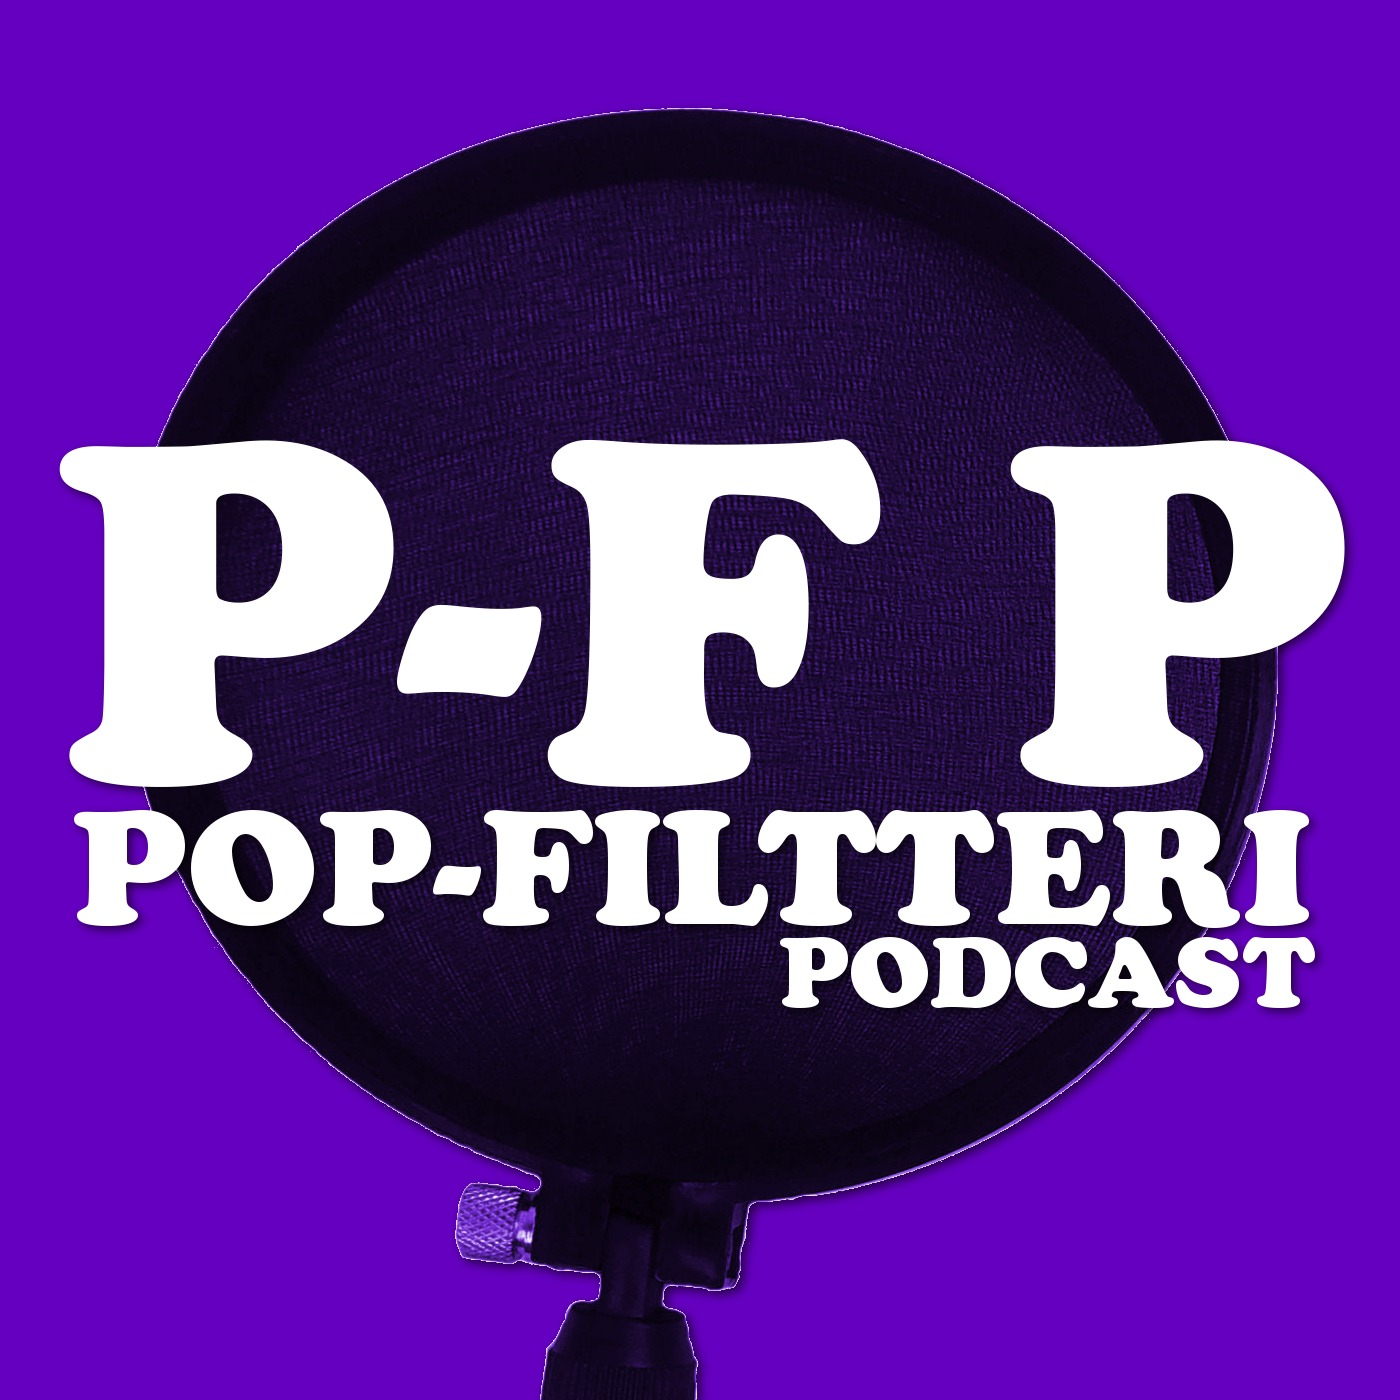 Pop-Filtteri Podcast